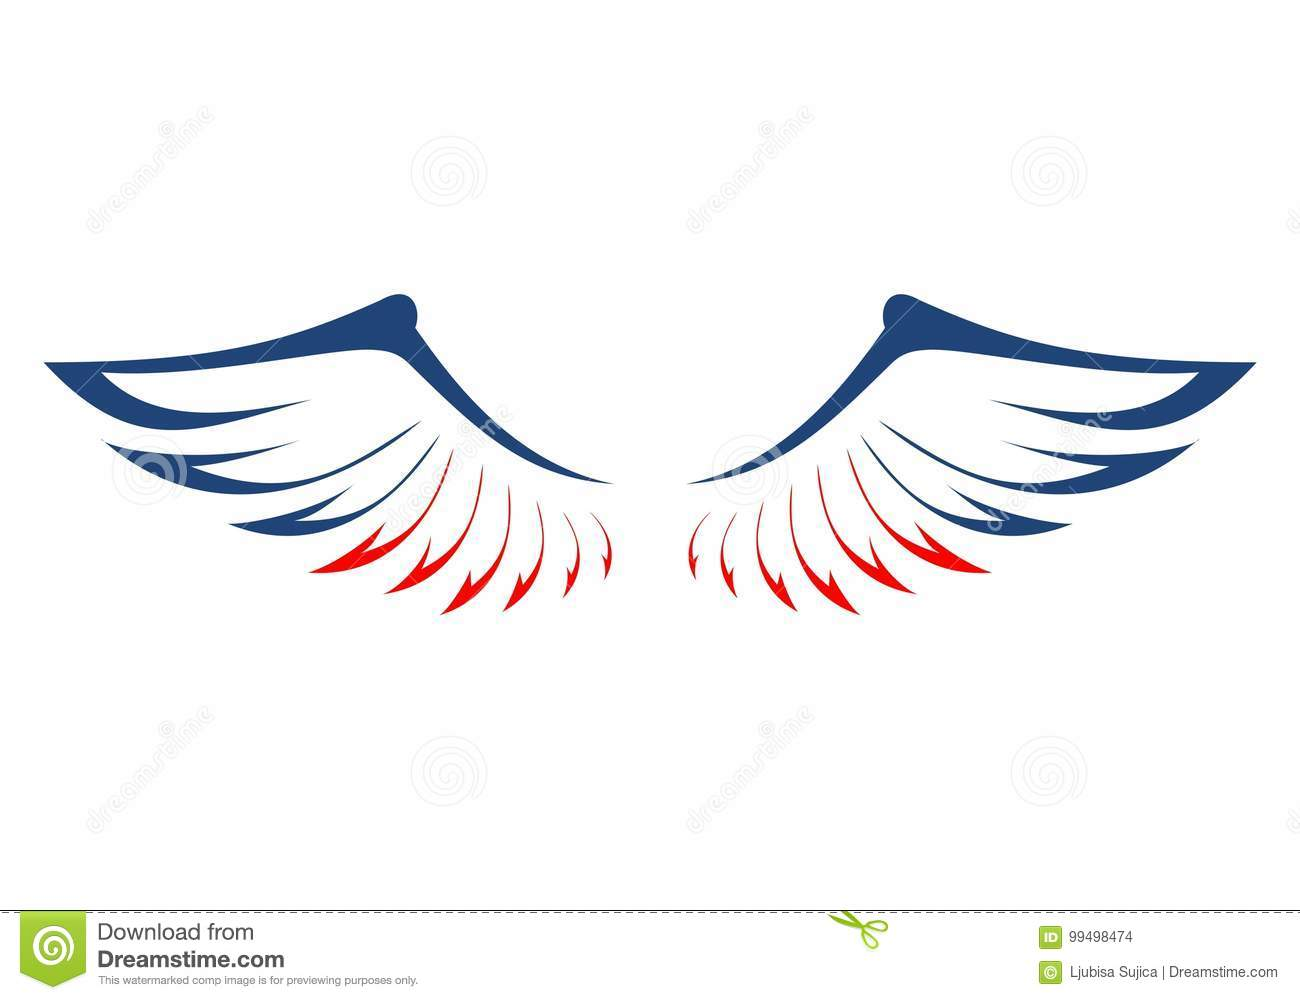 eagles wings in the colors of the american flag stock vector illustration of american america 99498474 https www dreamstime com stock illustration eagles wings colors american flag eagles wings colors american flag vector icon image99498474